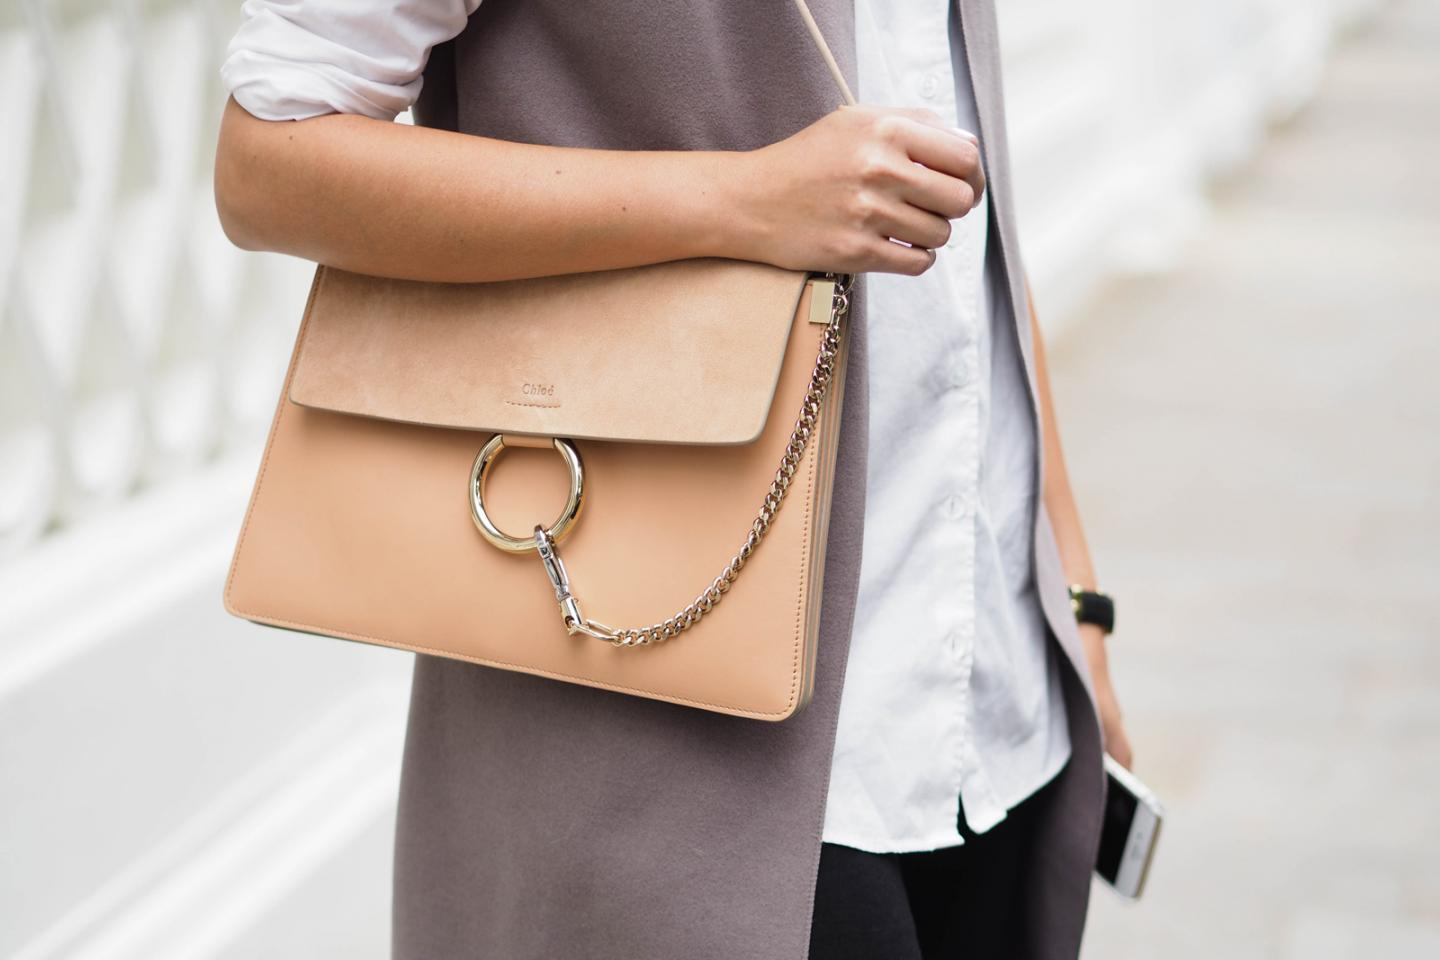 EJSTYLE wears Misty Beige Chloe Faye bag, taupe sleeveless coat, white shirt